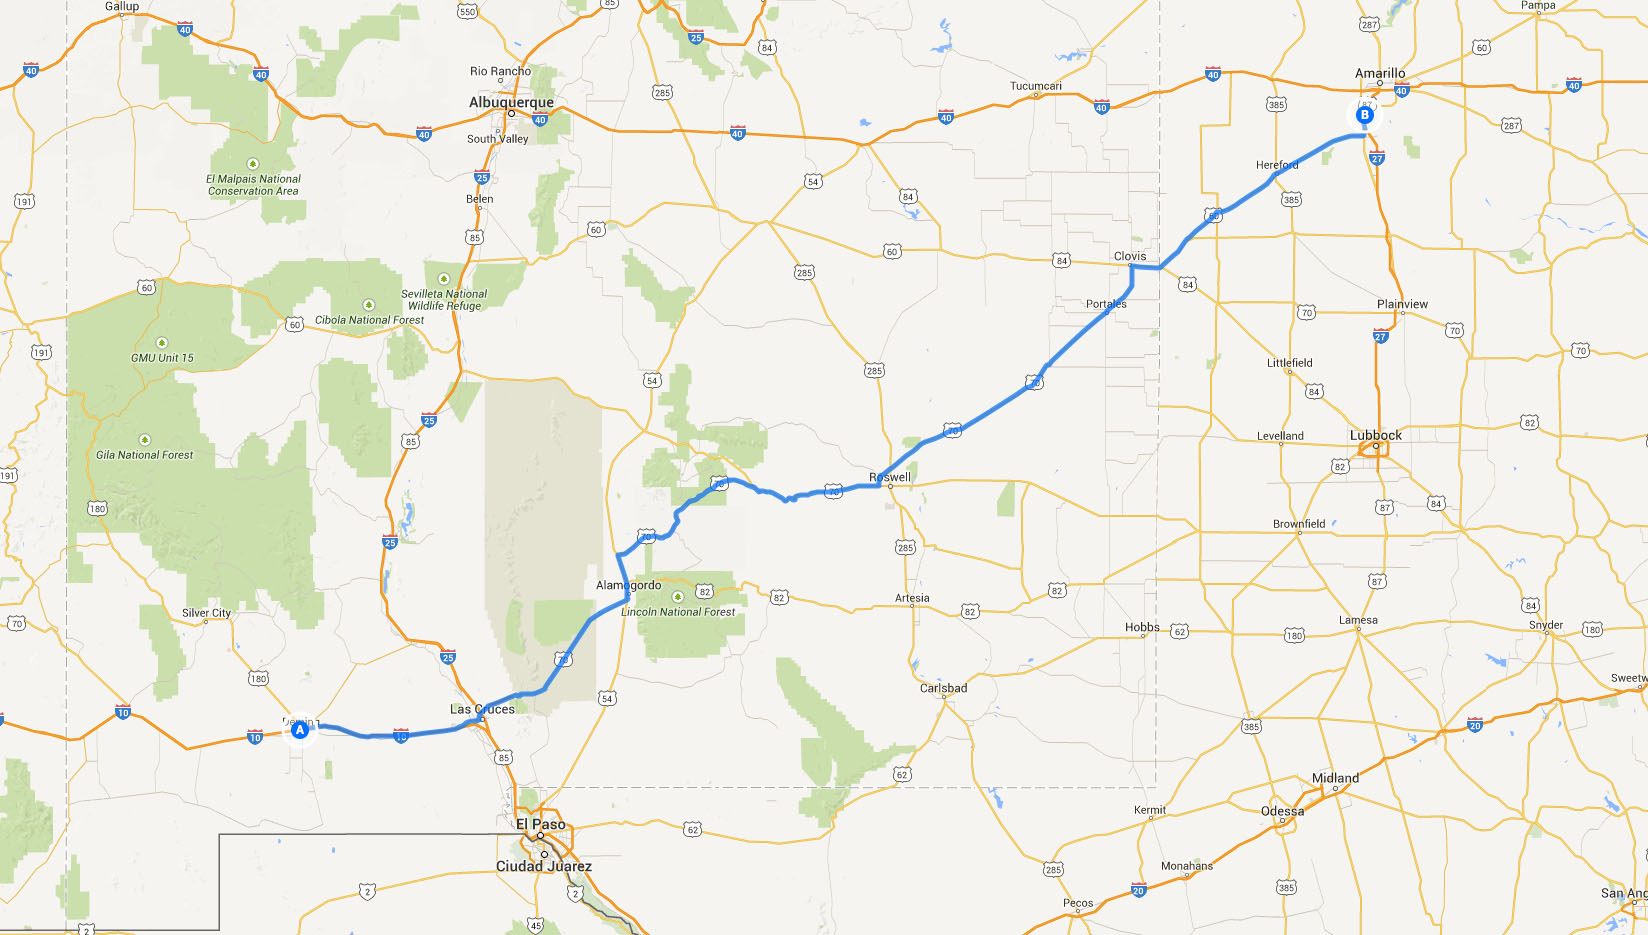 route from deming to amarillo